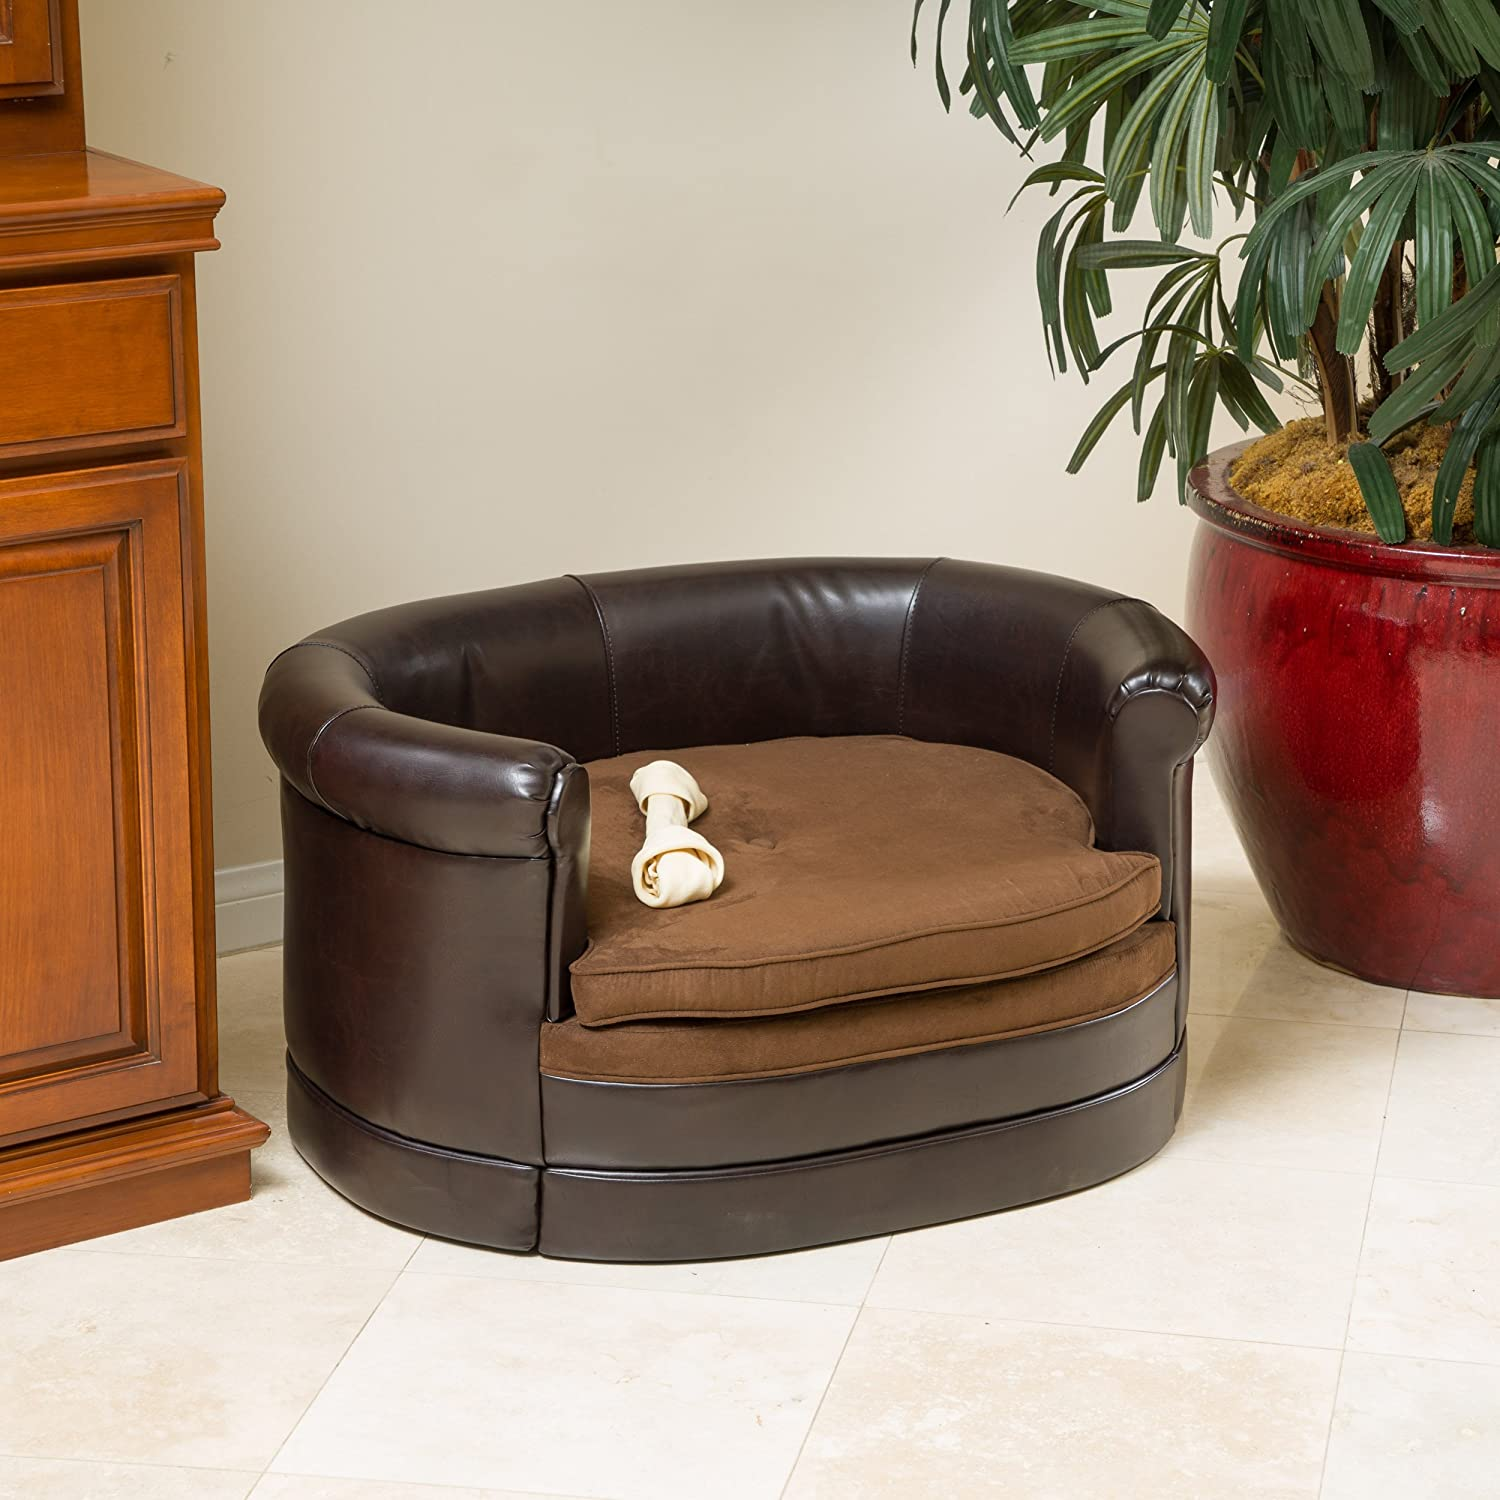 Beau Amazon.com: Rover Oval Chocolate Brown Leather Dog Sofa Bed: Kitchen U0026  Dining